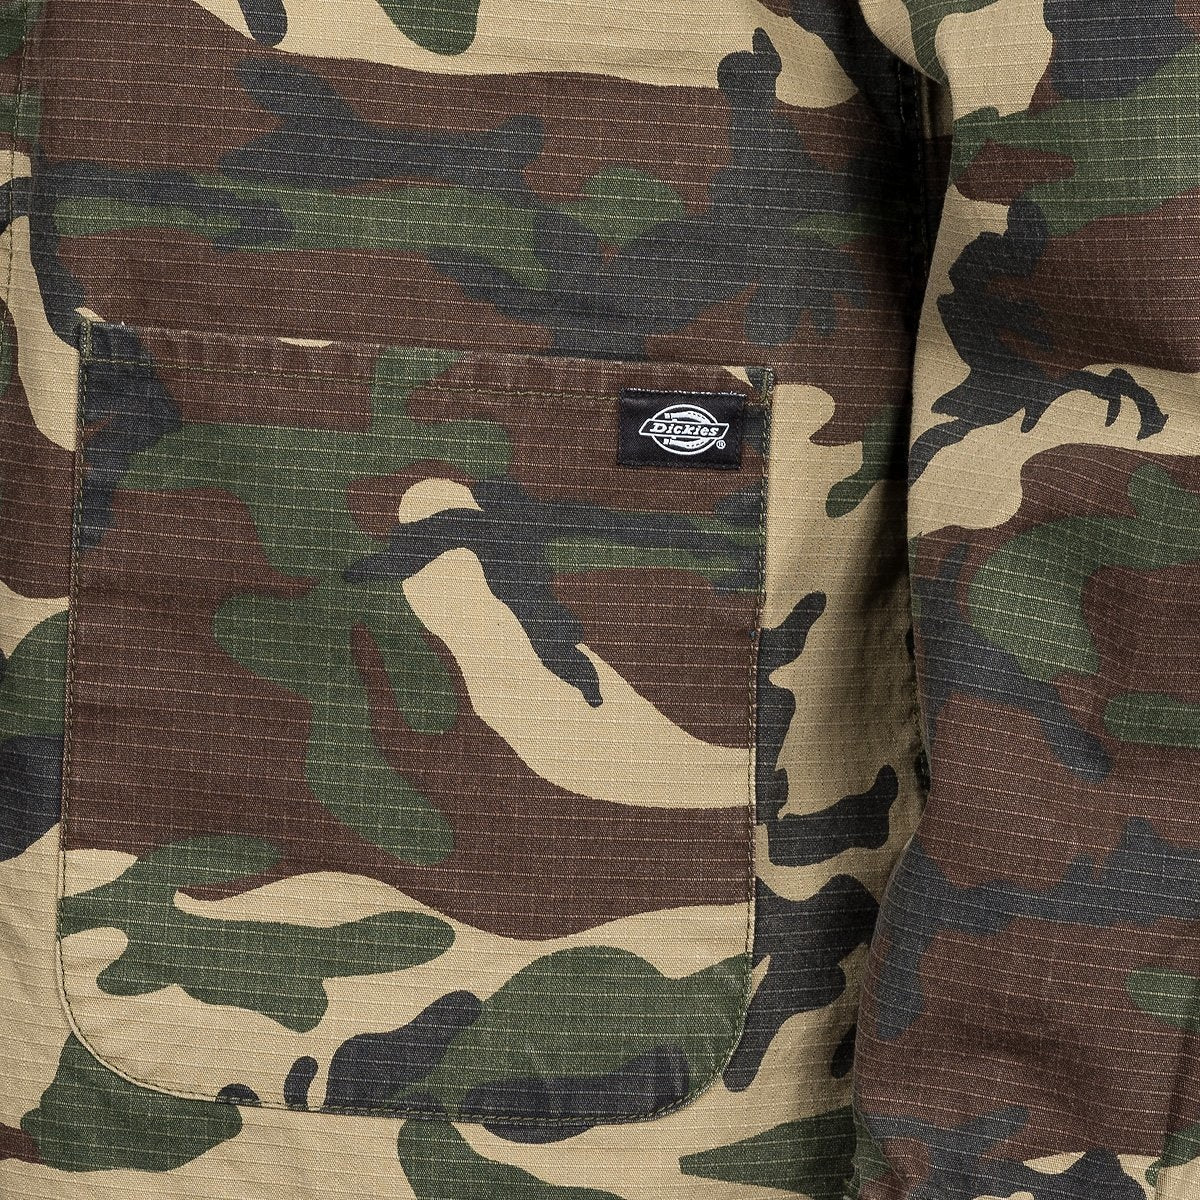 Dickies Kempton Long Sleeve Shirt Camouflage - Clothing